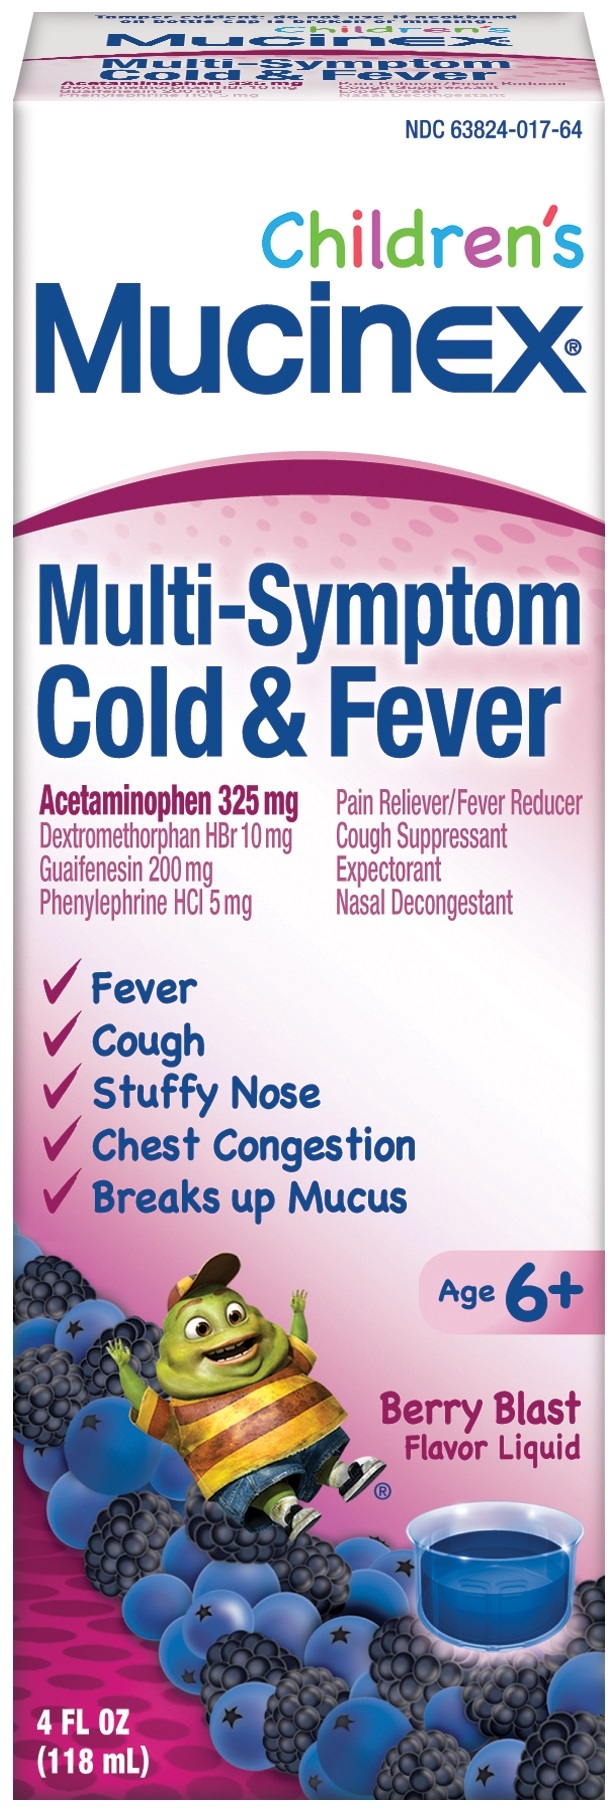 MUCINEX Childrens Cold  Fever  Mixed Berry Photo